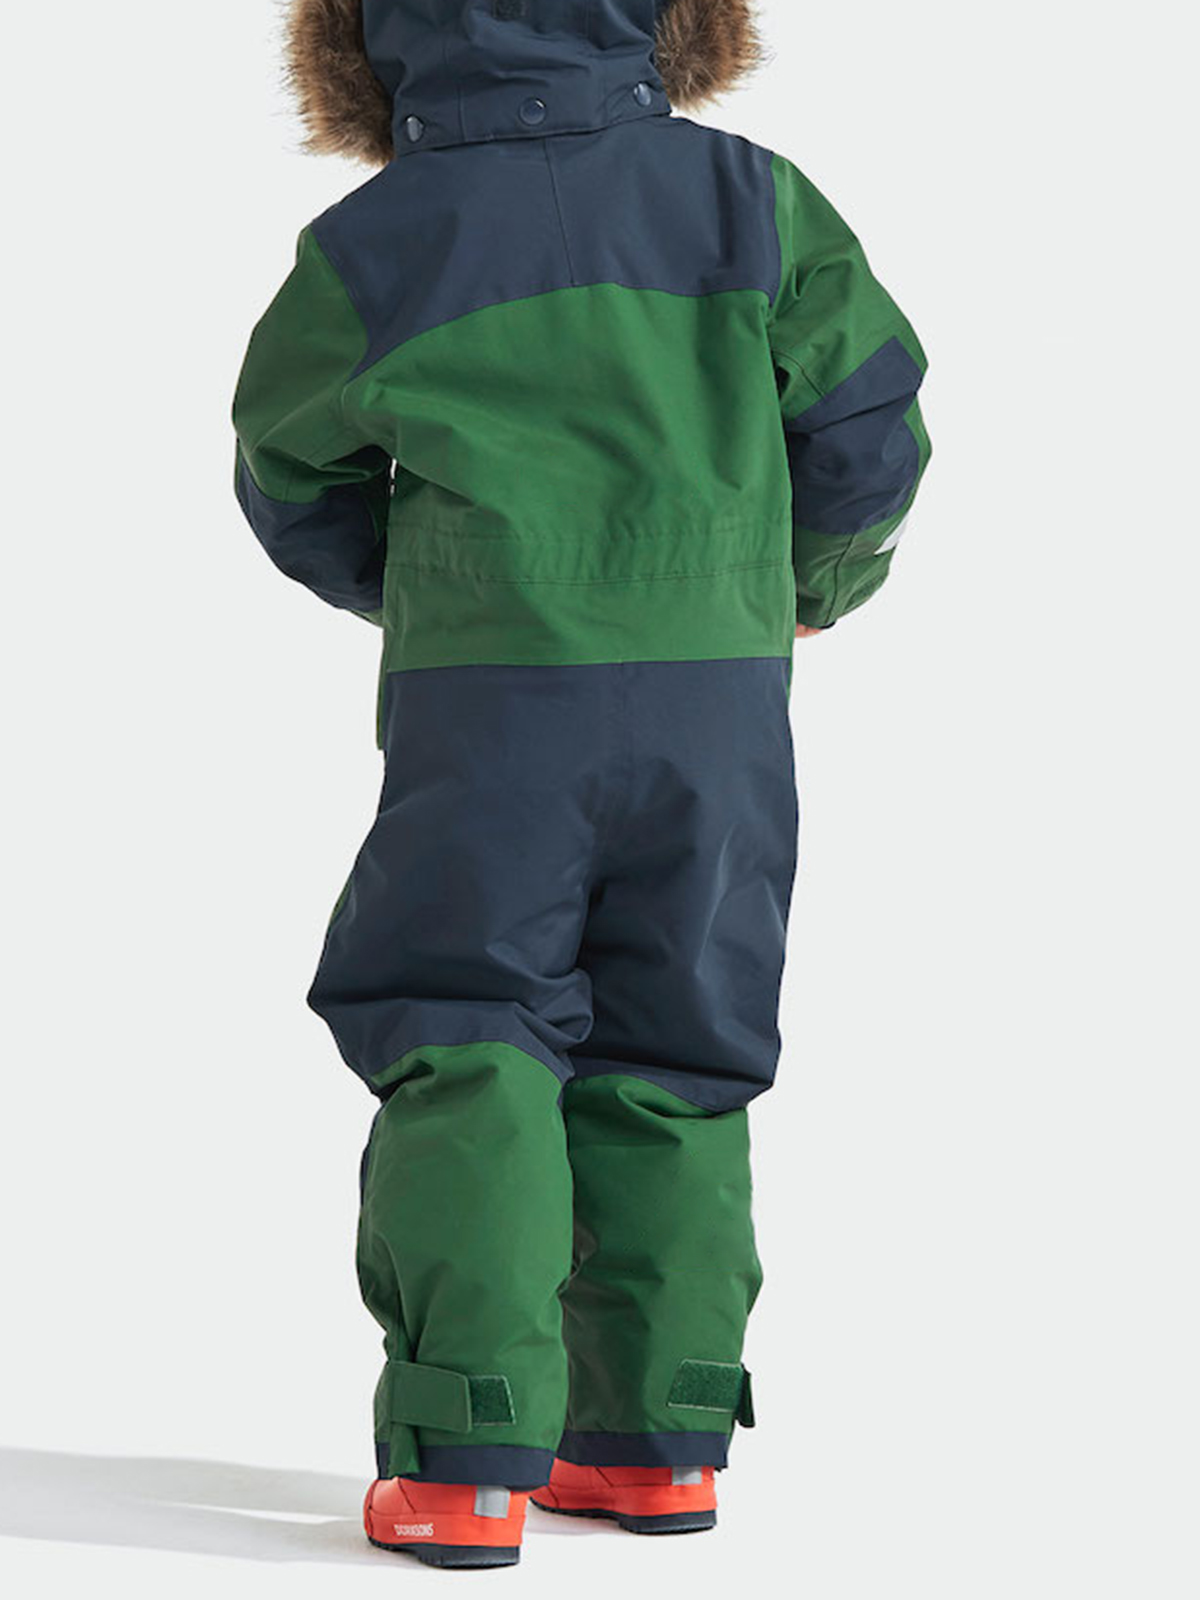 Winter children's down jacket